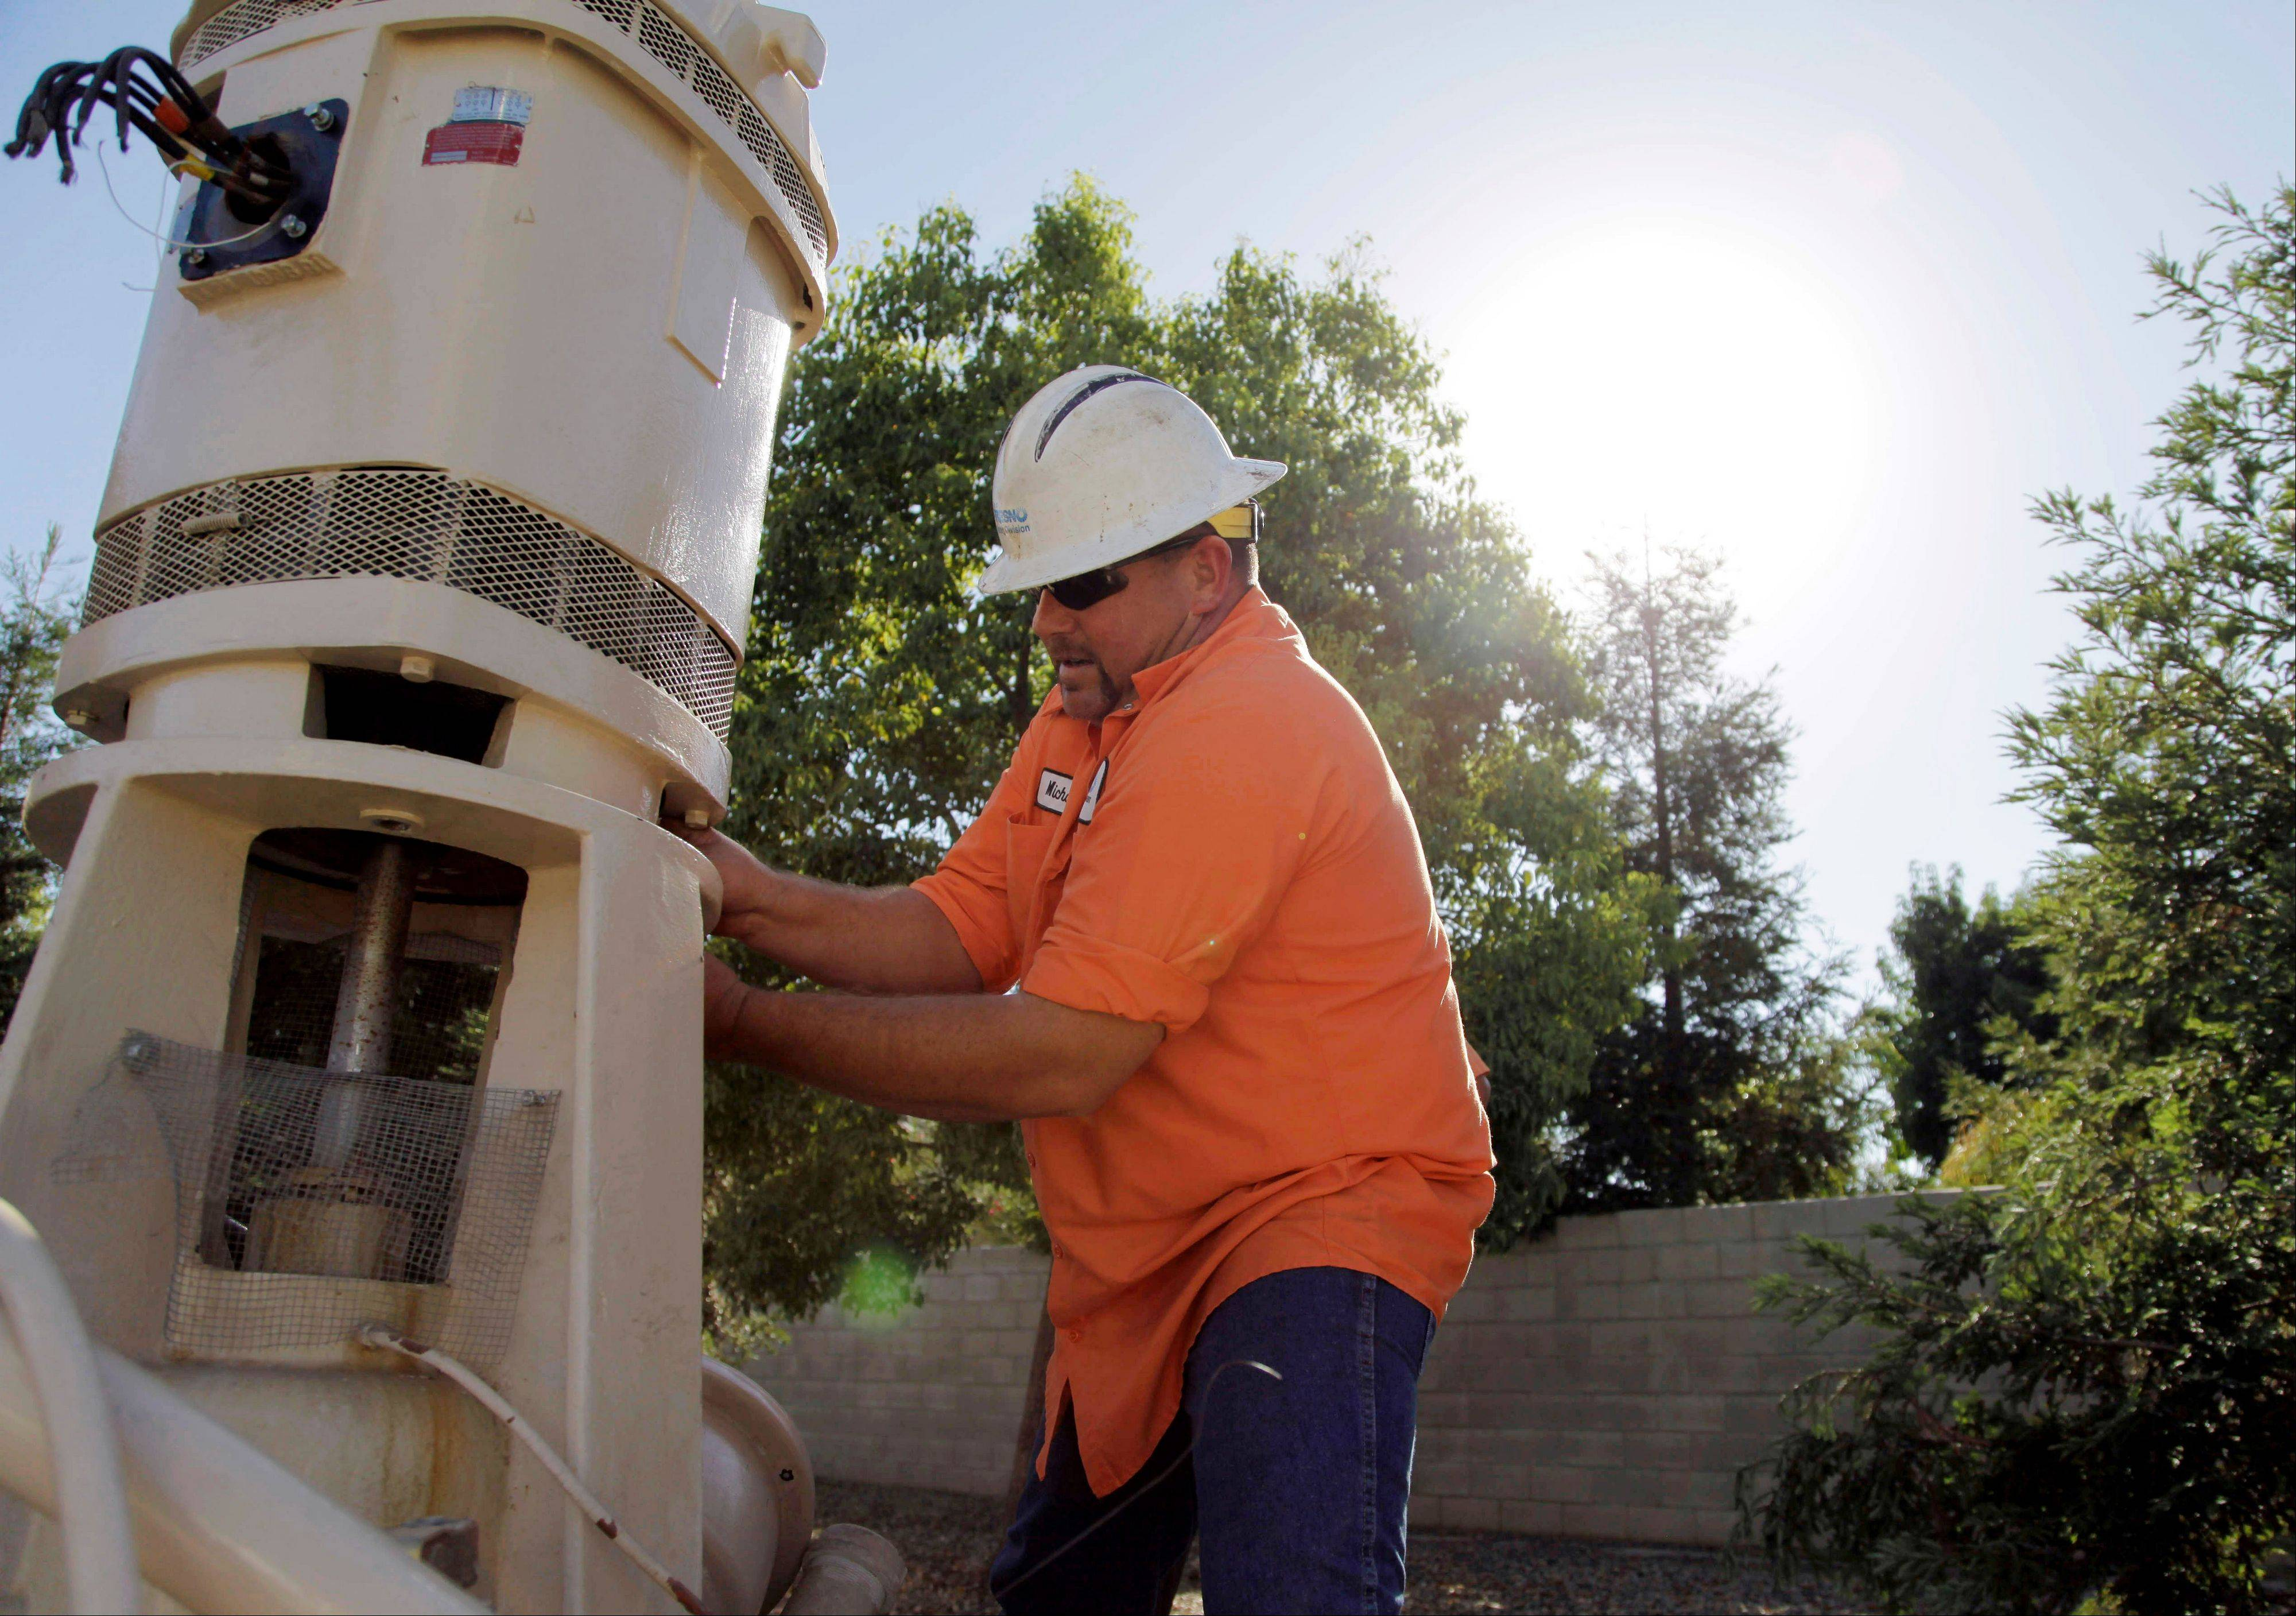 Micha Berry, with the city of Fresno's water division, unscrews the motor that sits on top of a groundwater well in order to repair the well's pump, in Fresno, Calif.